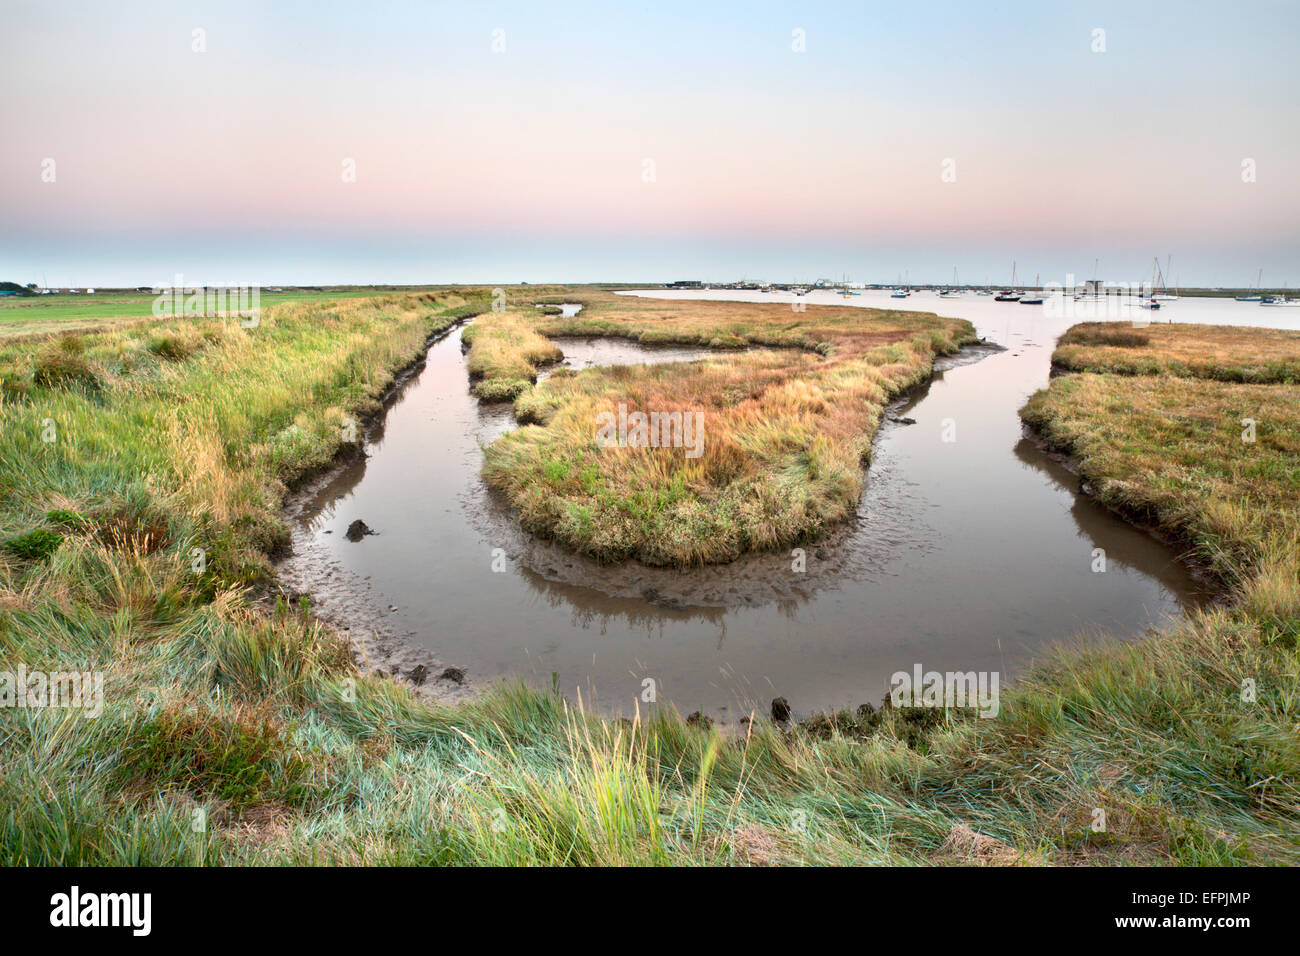 High tide at dusk, Aldeburgh Marshes, Suffolk, England, United Kingdom, Europe Stock Photo